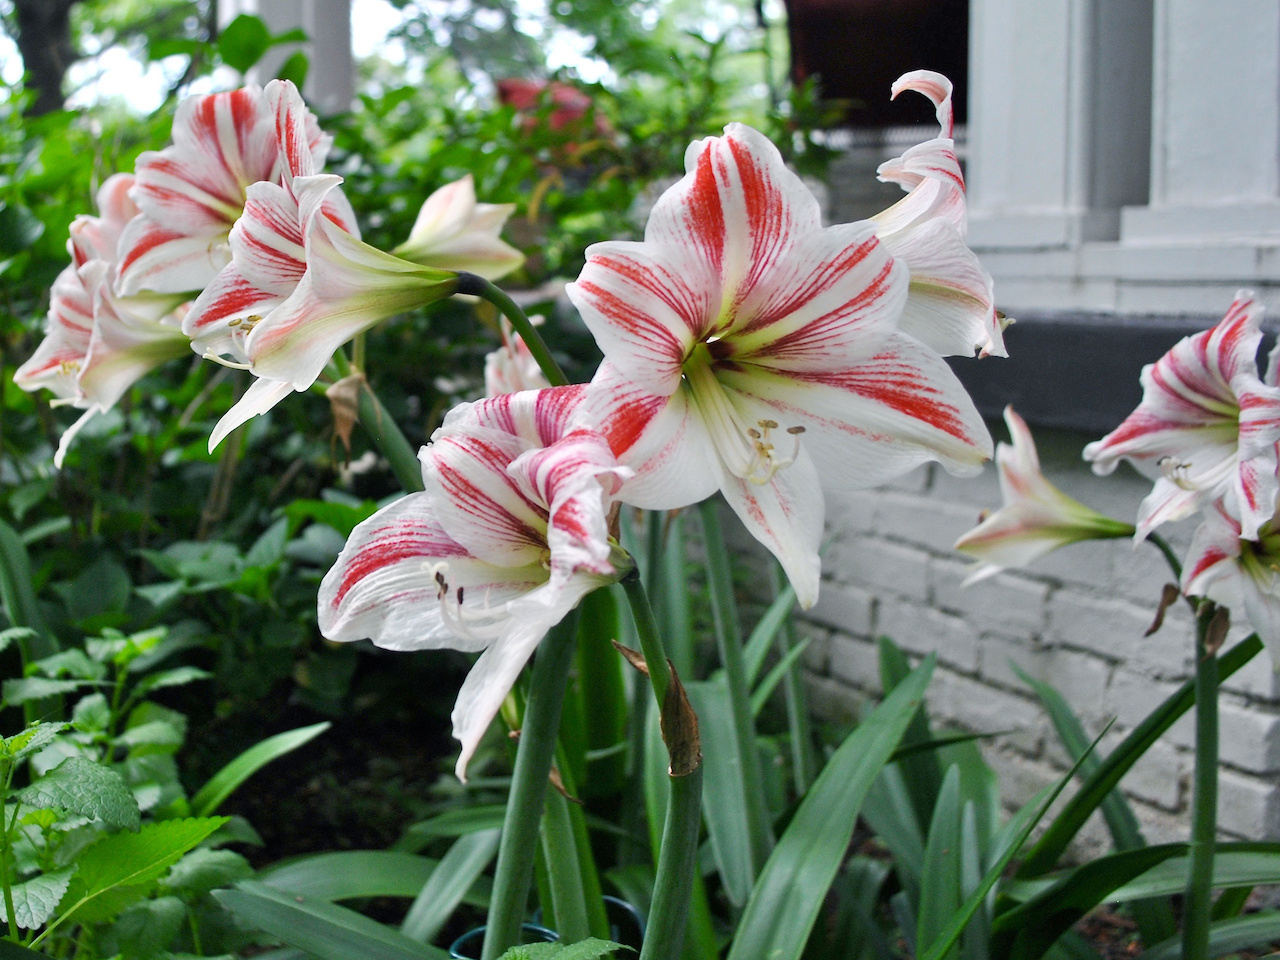 """""""Those are Amaryllis that we receive each year for Christmas,"""" says Jeanne. """"This year they all bloomed the same color!"""""""